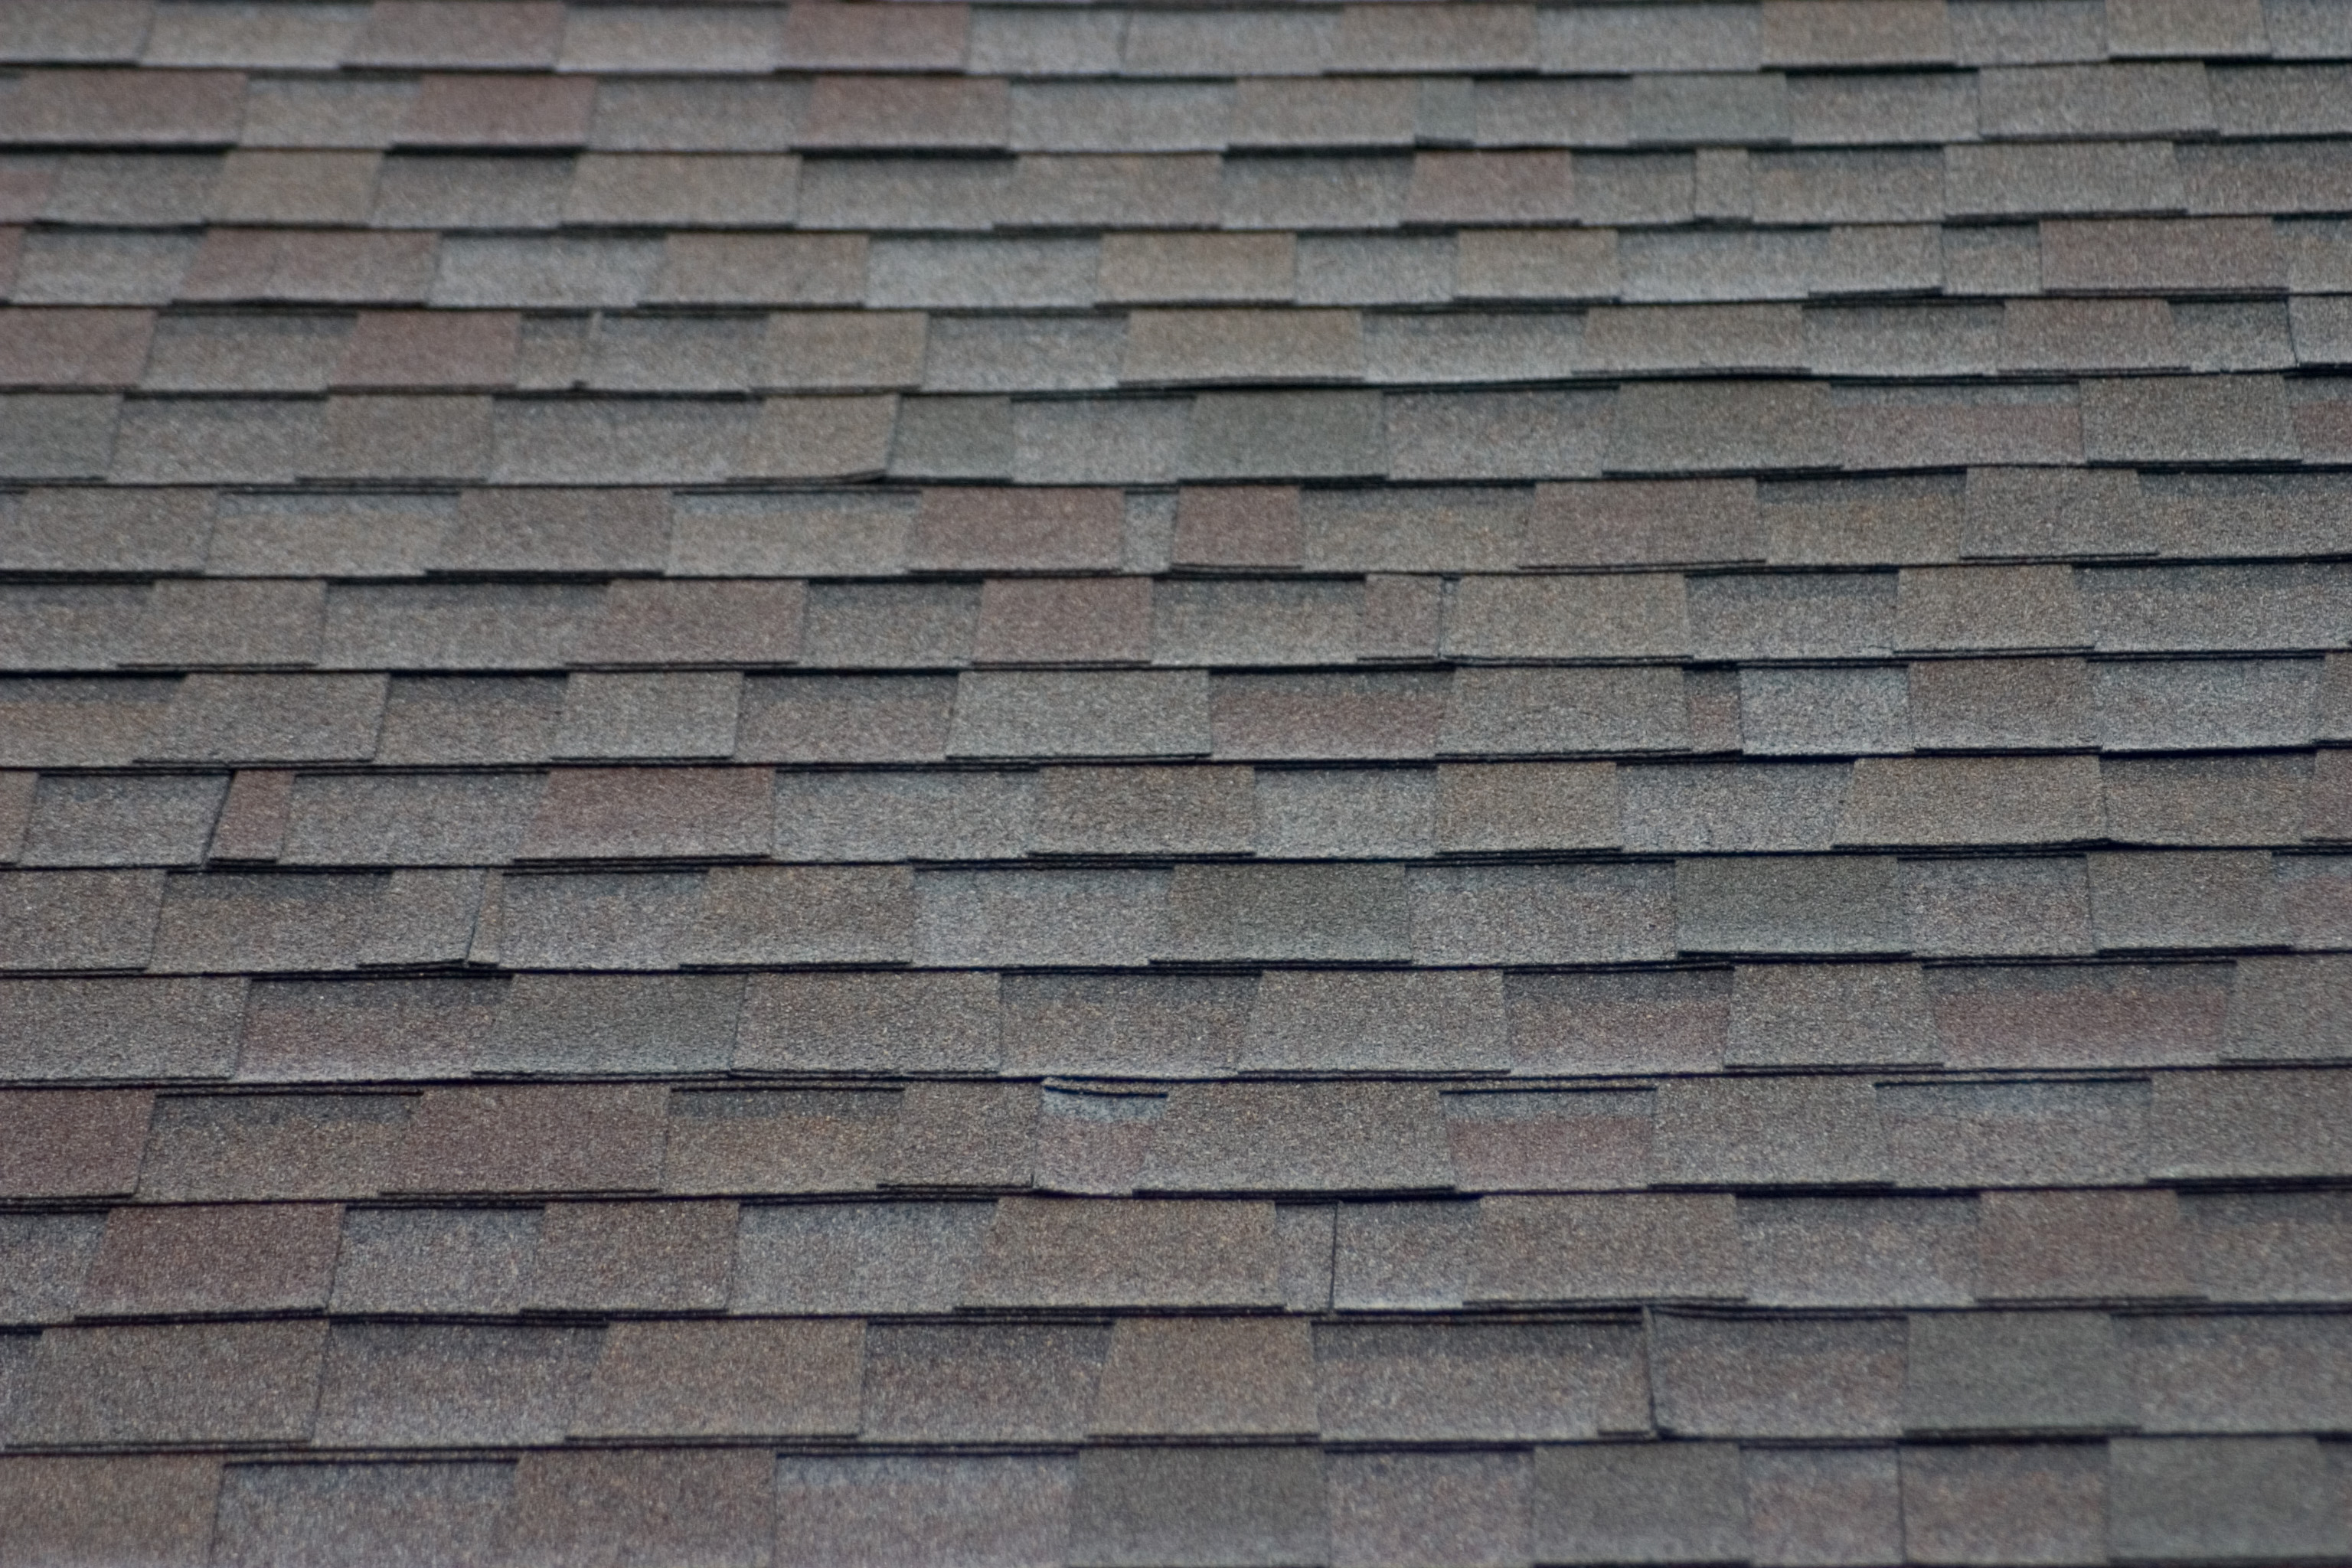 All You Need To Know About Asphalt Shingles